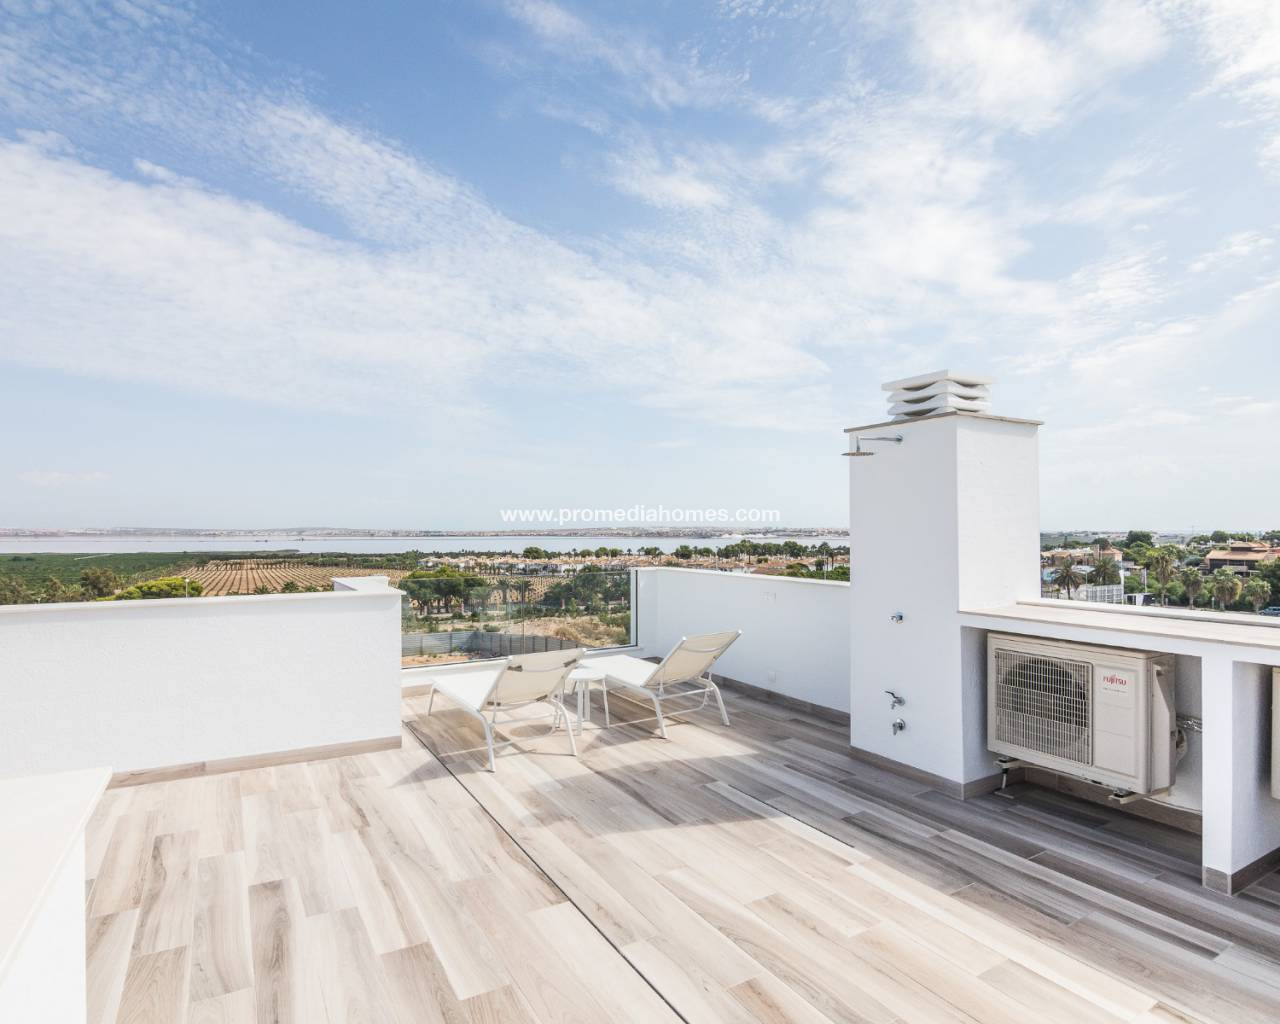 New build villa in Torrevieja